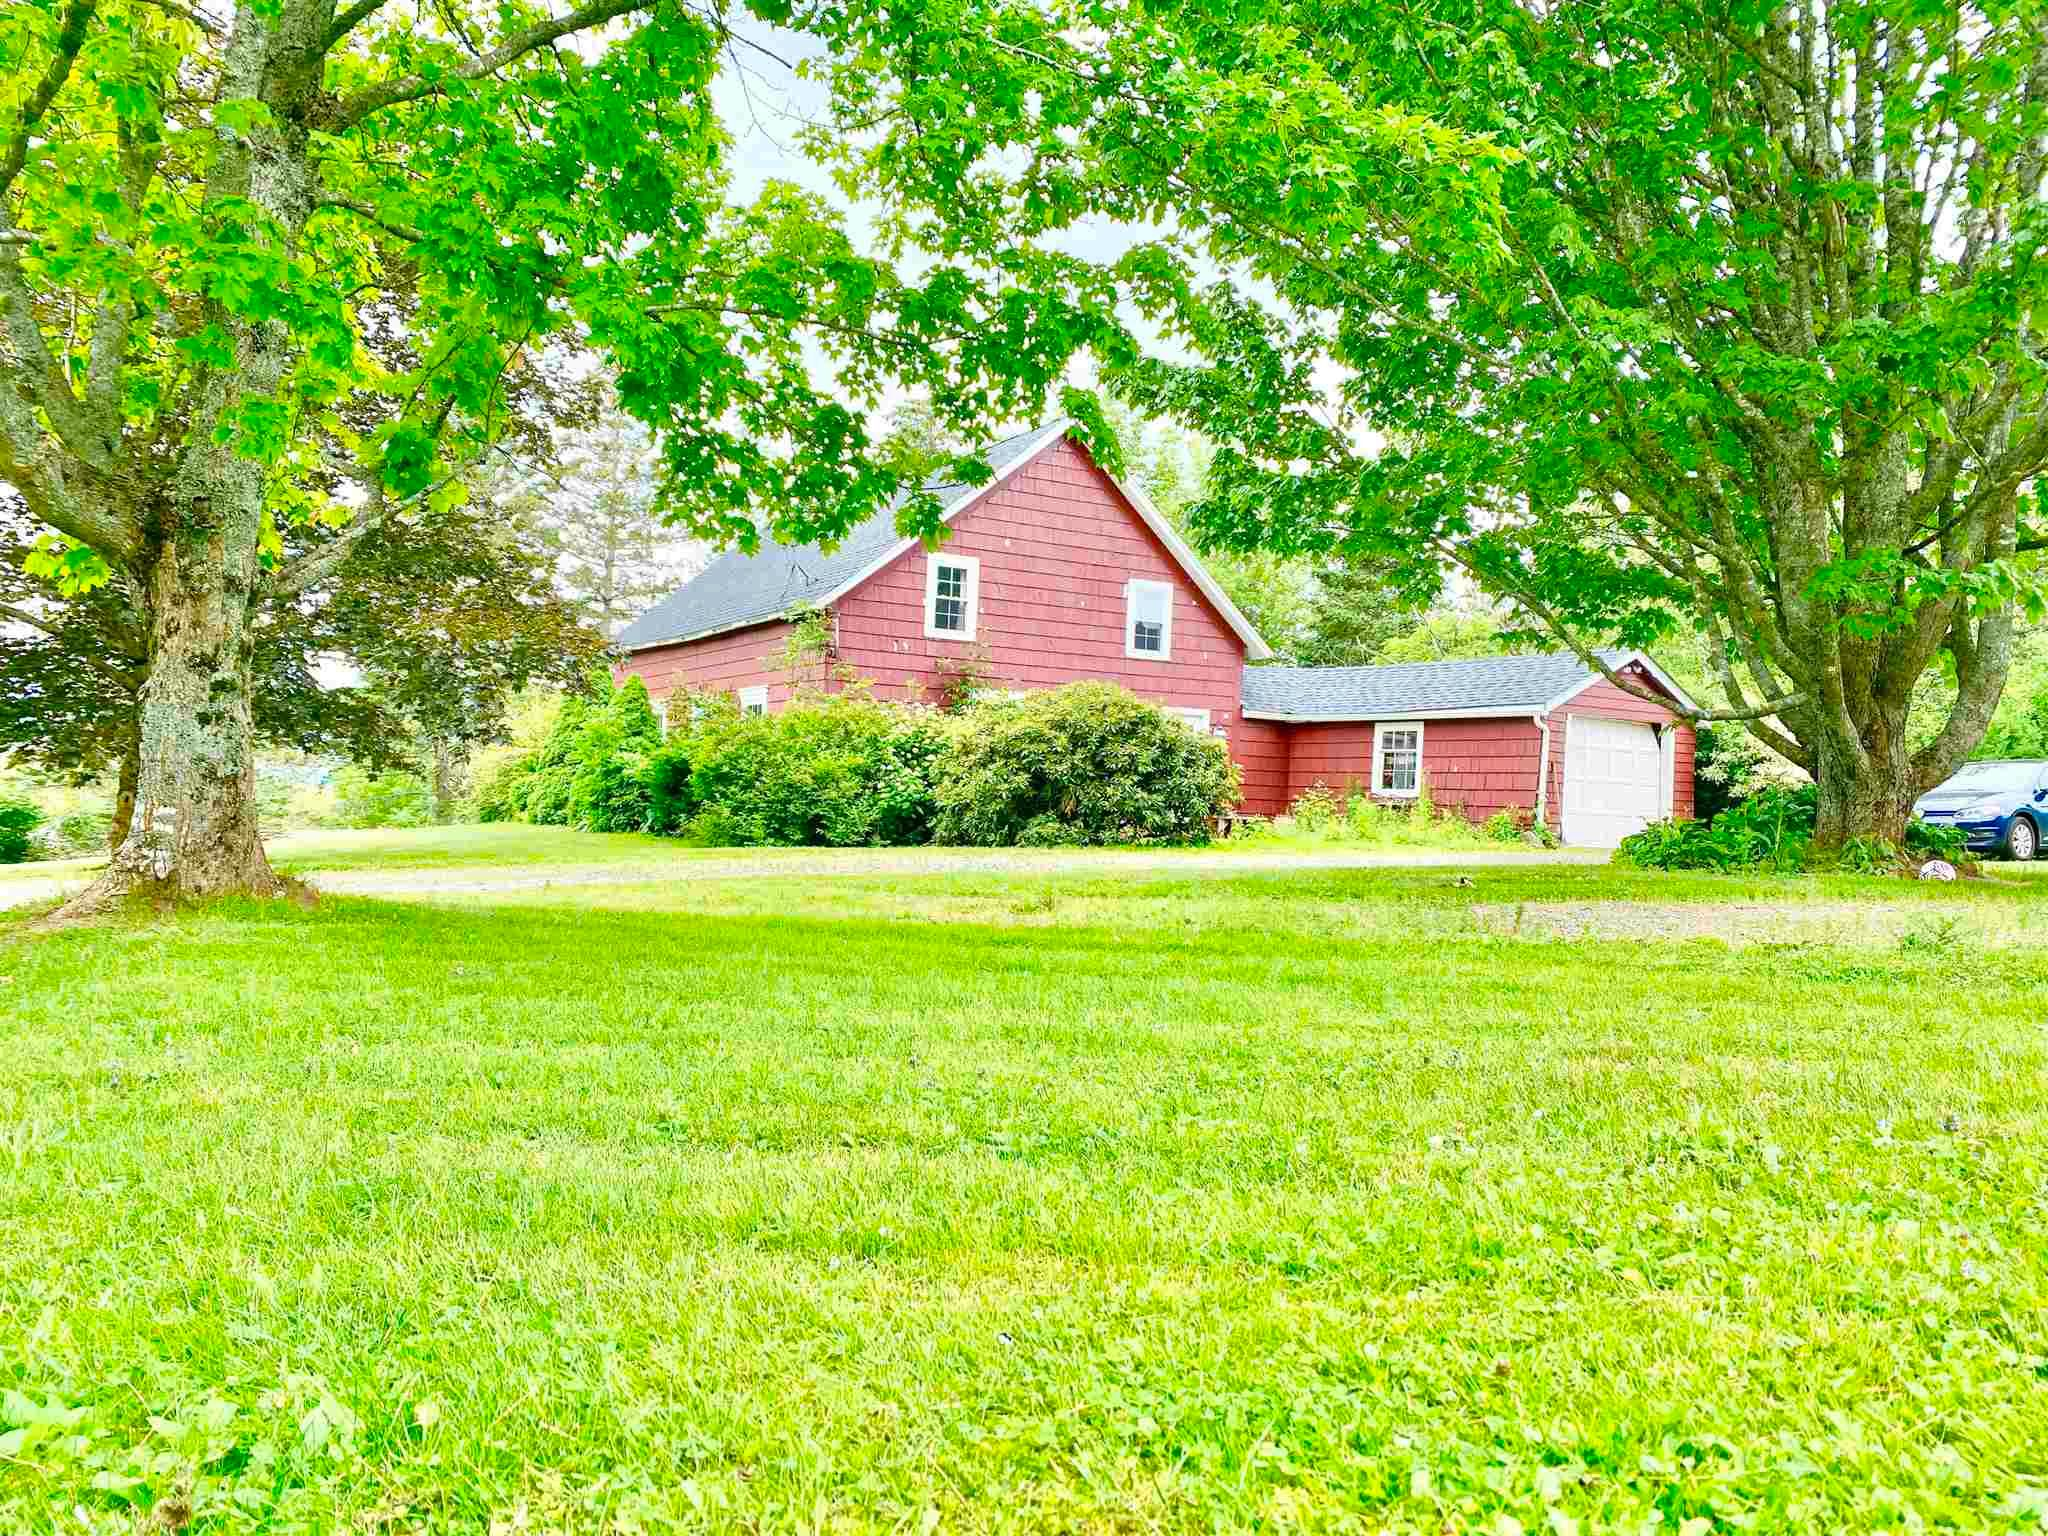 Main Photo: 439 Forest Glade Road in Forest Glade: 400-Annapolis County Residential for sale (Annapolis Valley)  : MLS®# 202117861